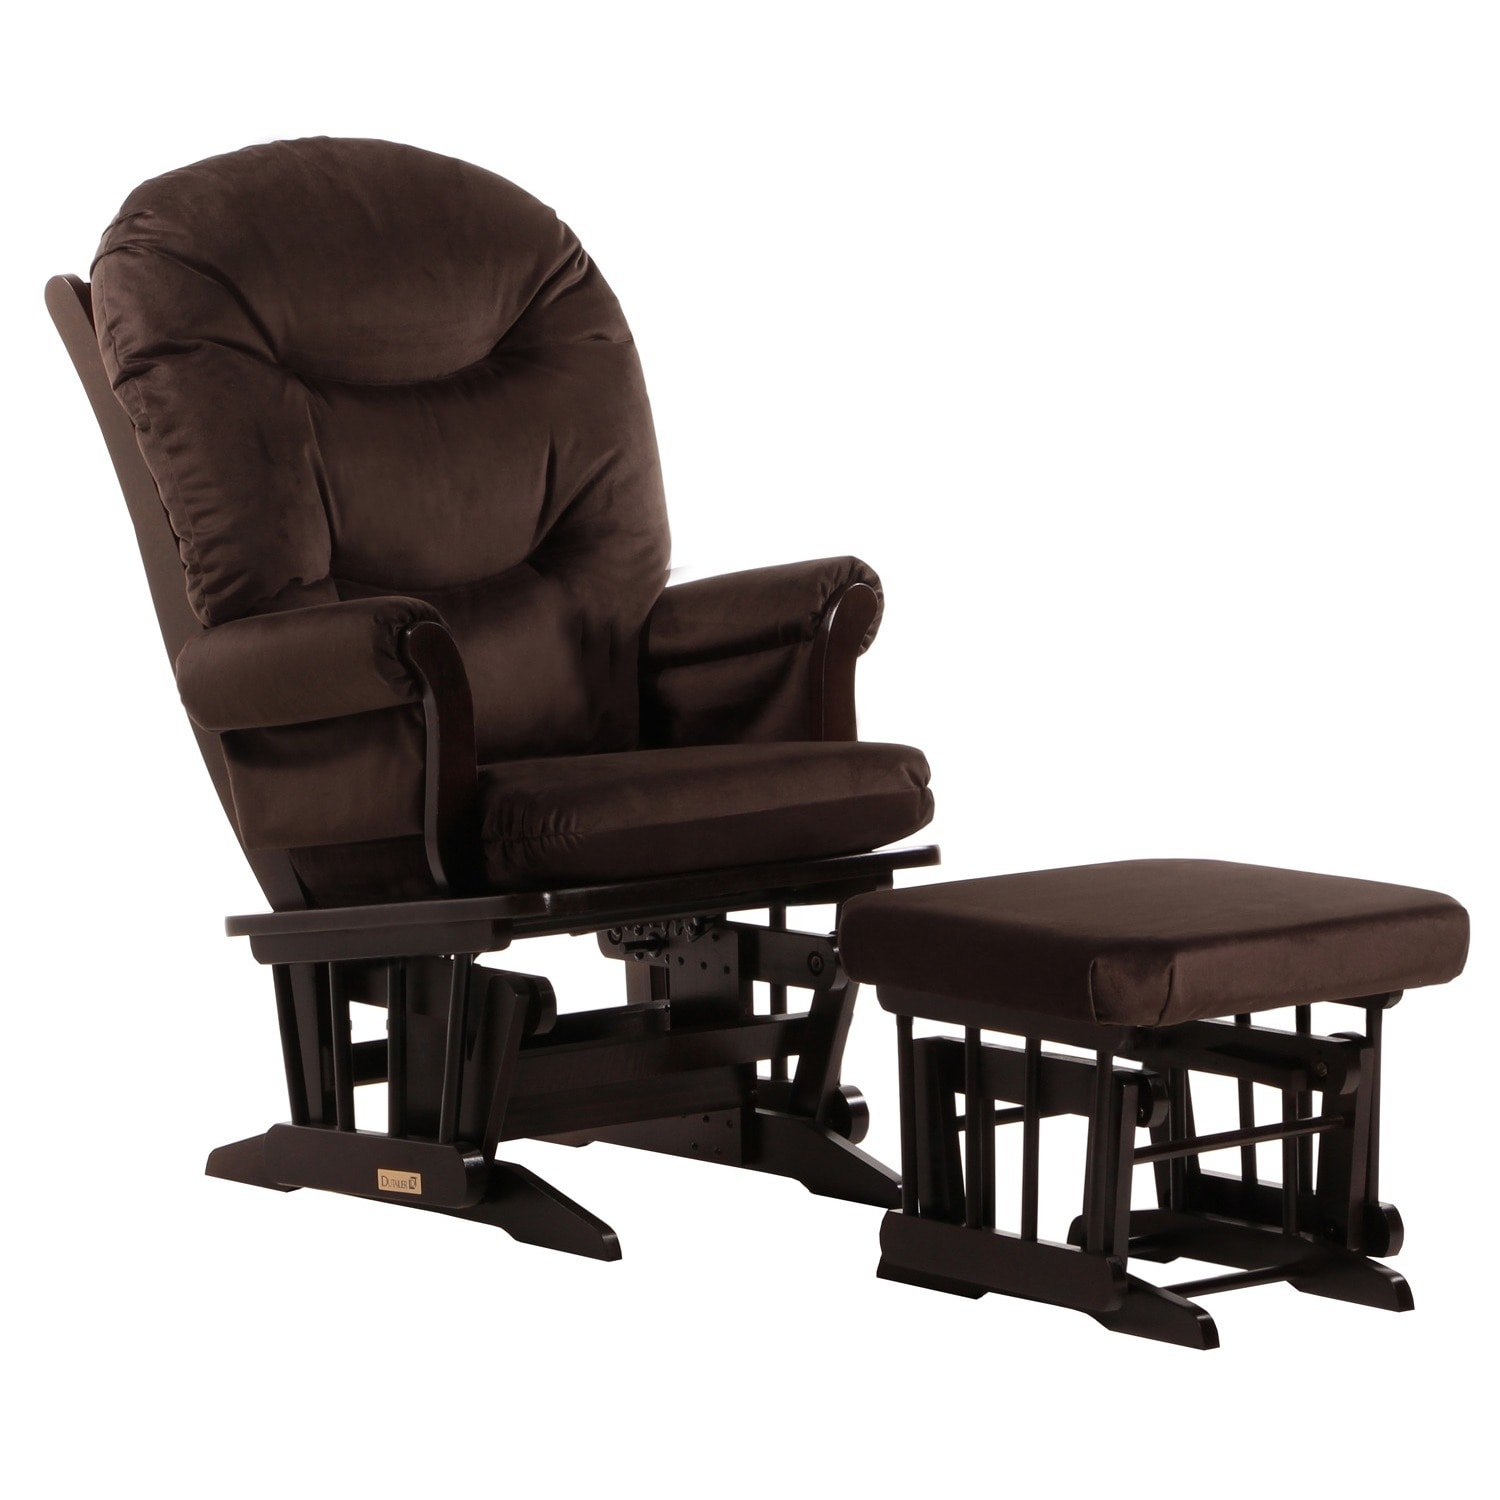 Dutailier Brown Microfiber Sleigh Glider Chair/ Ottoman   Free Shipping  Today   Overstock   13417982